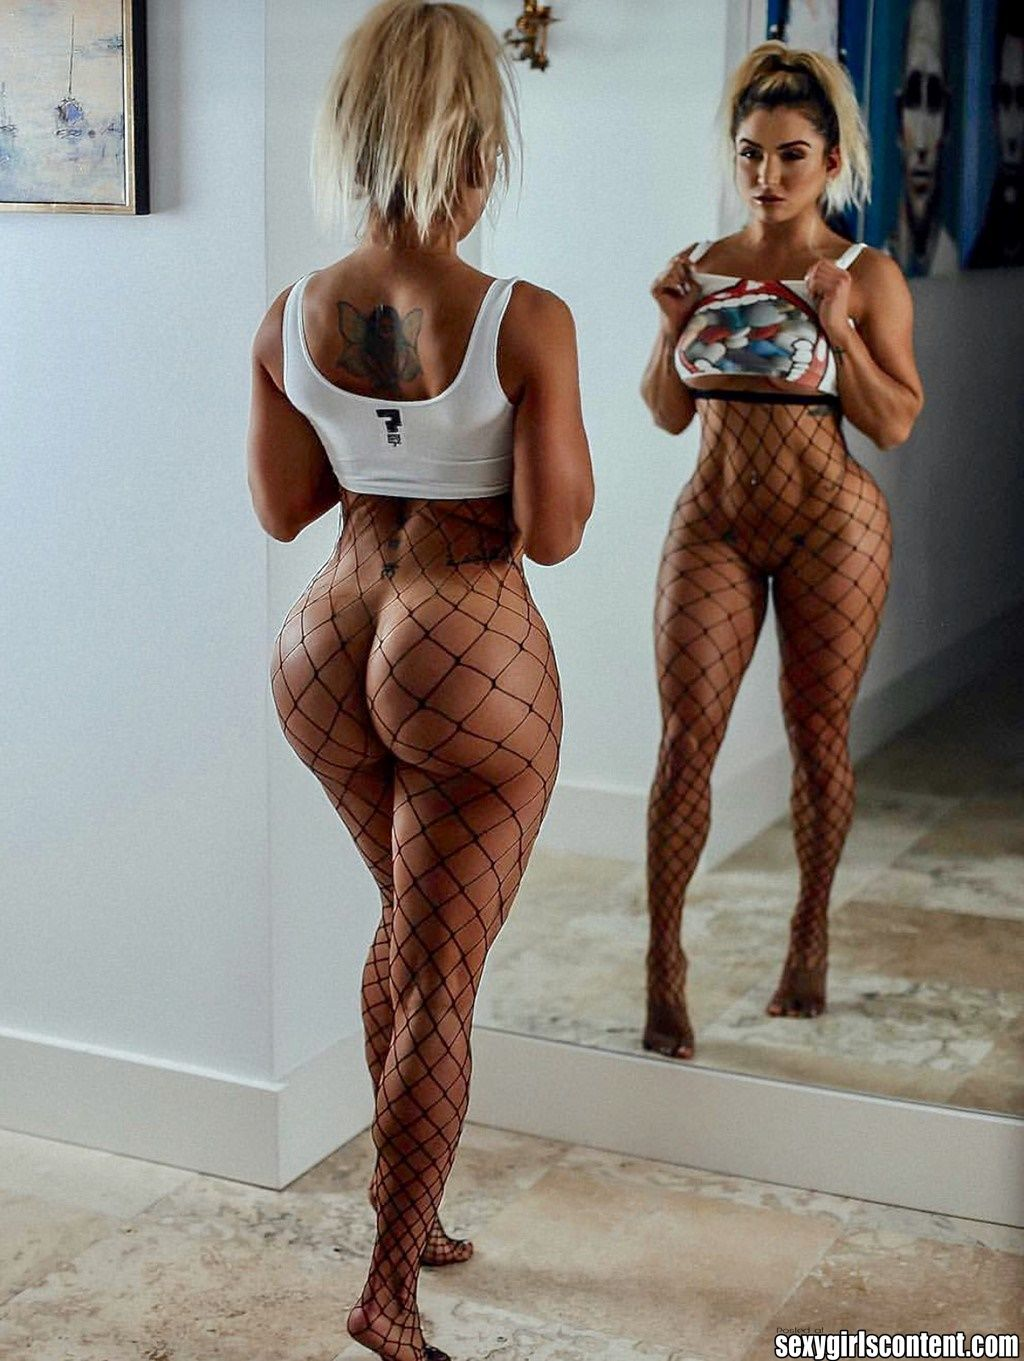 1 Hot Thick Blonde Girl Fishnet Pantyhose Big Booty Htg25 721x958